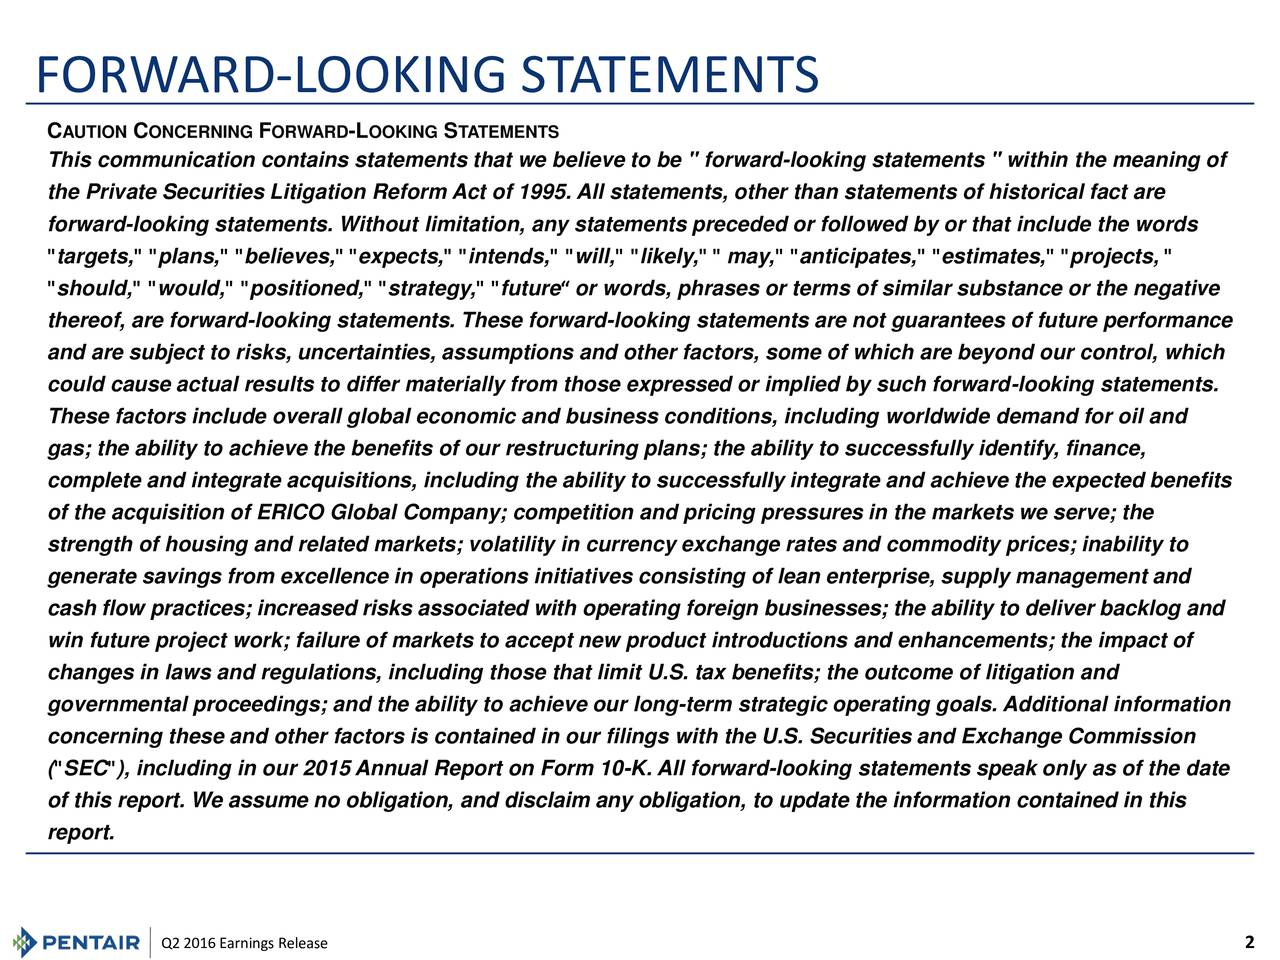 """C AUTIONCONCERNING FORWARD -LOOKING STATEMENTS This communication contains statements that we believe to be """" forward-looking statements """" within the meaning of the Private Securities Litigation Reform Act of 1995. All statements, other than statements of historical fact are forward-looking statements. Without limitation, any statements preceded or followed by or that include the words """"targets,"""" """"plans,"""" """"believes,"""" """"expects,"""" """"intends,"""" """"will,"""" """"likely,"""" """" may,"""" """"anticipates,"""" """"estimates,"""" """"projects, """" """"should,"""" """"would,"""" """"positioned,"""" """"strategy,"""" """"future or words, phrases or terms of similar substance or the negative thereof, are forward-looking statements. These forward-looking statements are not guarantees of future performance and are subject to risks, uncertainties, assumptions and other factors, some of which are beyond our control, which could cause actual results to differ materially from those expressed or implied by such forward-looking statements. These factors include overall global economic and business conditions, including worldwide demand for oil and gas; the ability to achieve the benefits of our restructuring plans; the ability to successfully identify, finance, complete and integrate acquisitions, including the ability to successfully integrate and achieve the expected benefits of the acquisition of ERICO Global Company; competition and pricing pressures in the markets we serve; the strength of housing and related markets; volatility in currency exchange rates and commodity prices; inability to generate savings from excellence in operations initiatives consisting of lean enterprise, supply management and cash flow practices; increased risks associated with operating foreign businesses; the ability to deliver backlog and win future project work; failure of markets to accept new product introductions and enhancements; the impact of changes in laws and regulations, including those that limit U.S. tax benefits; the outcome of litigation and governmen"""